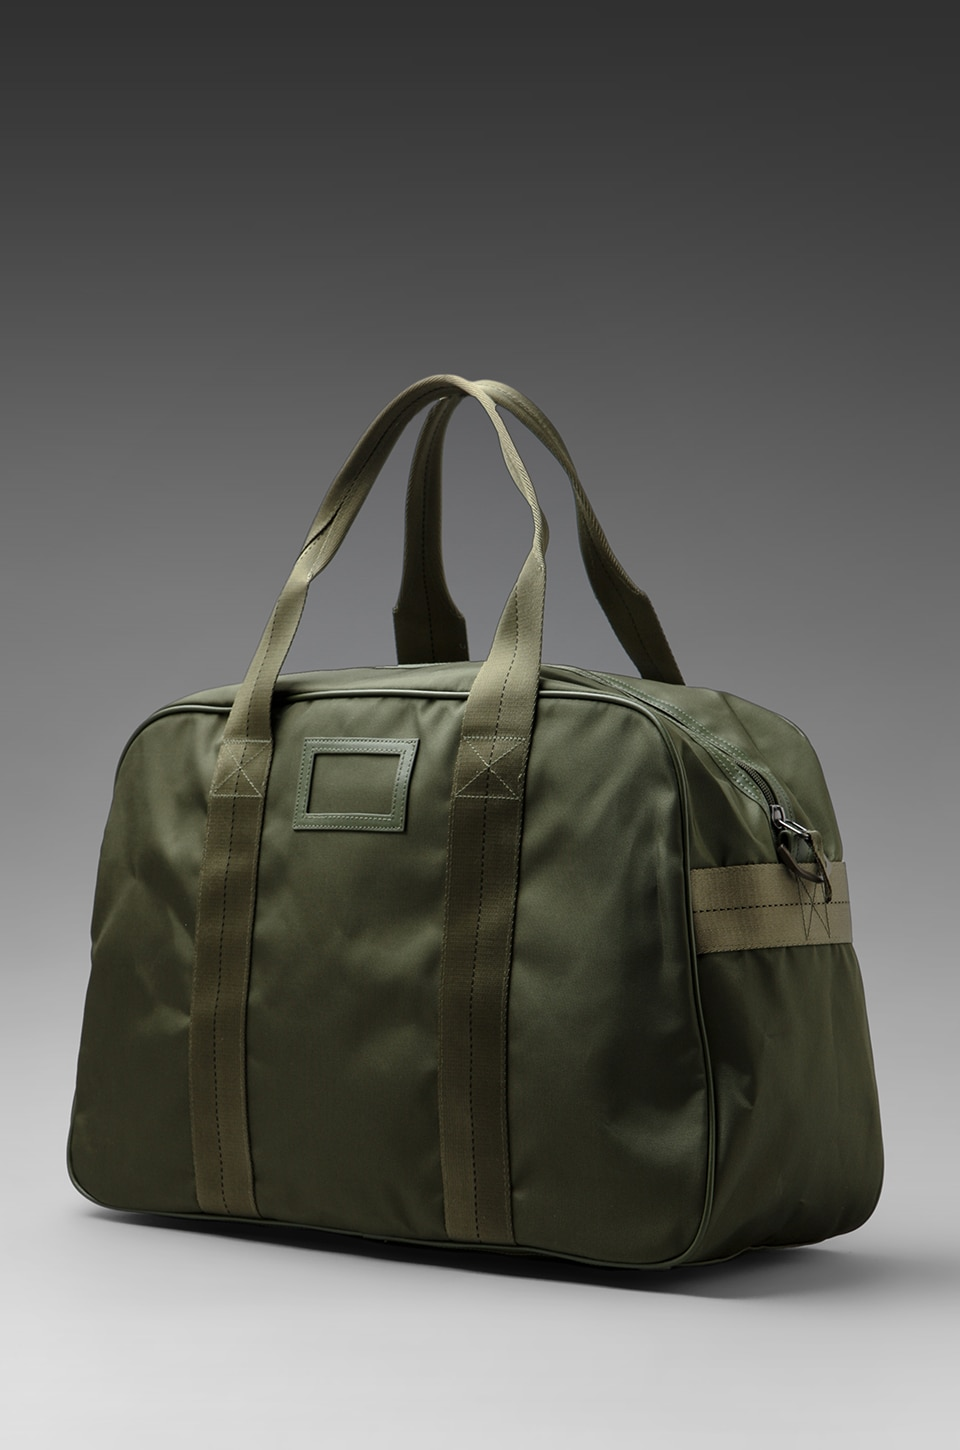 G-Star Matt Sports Bag in Sage